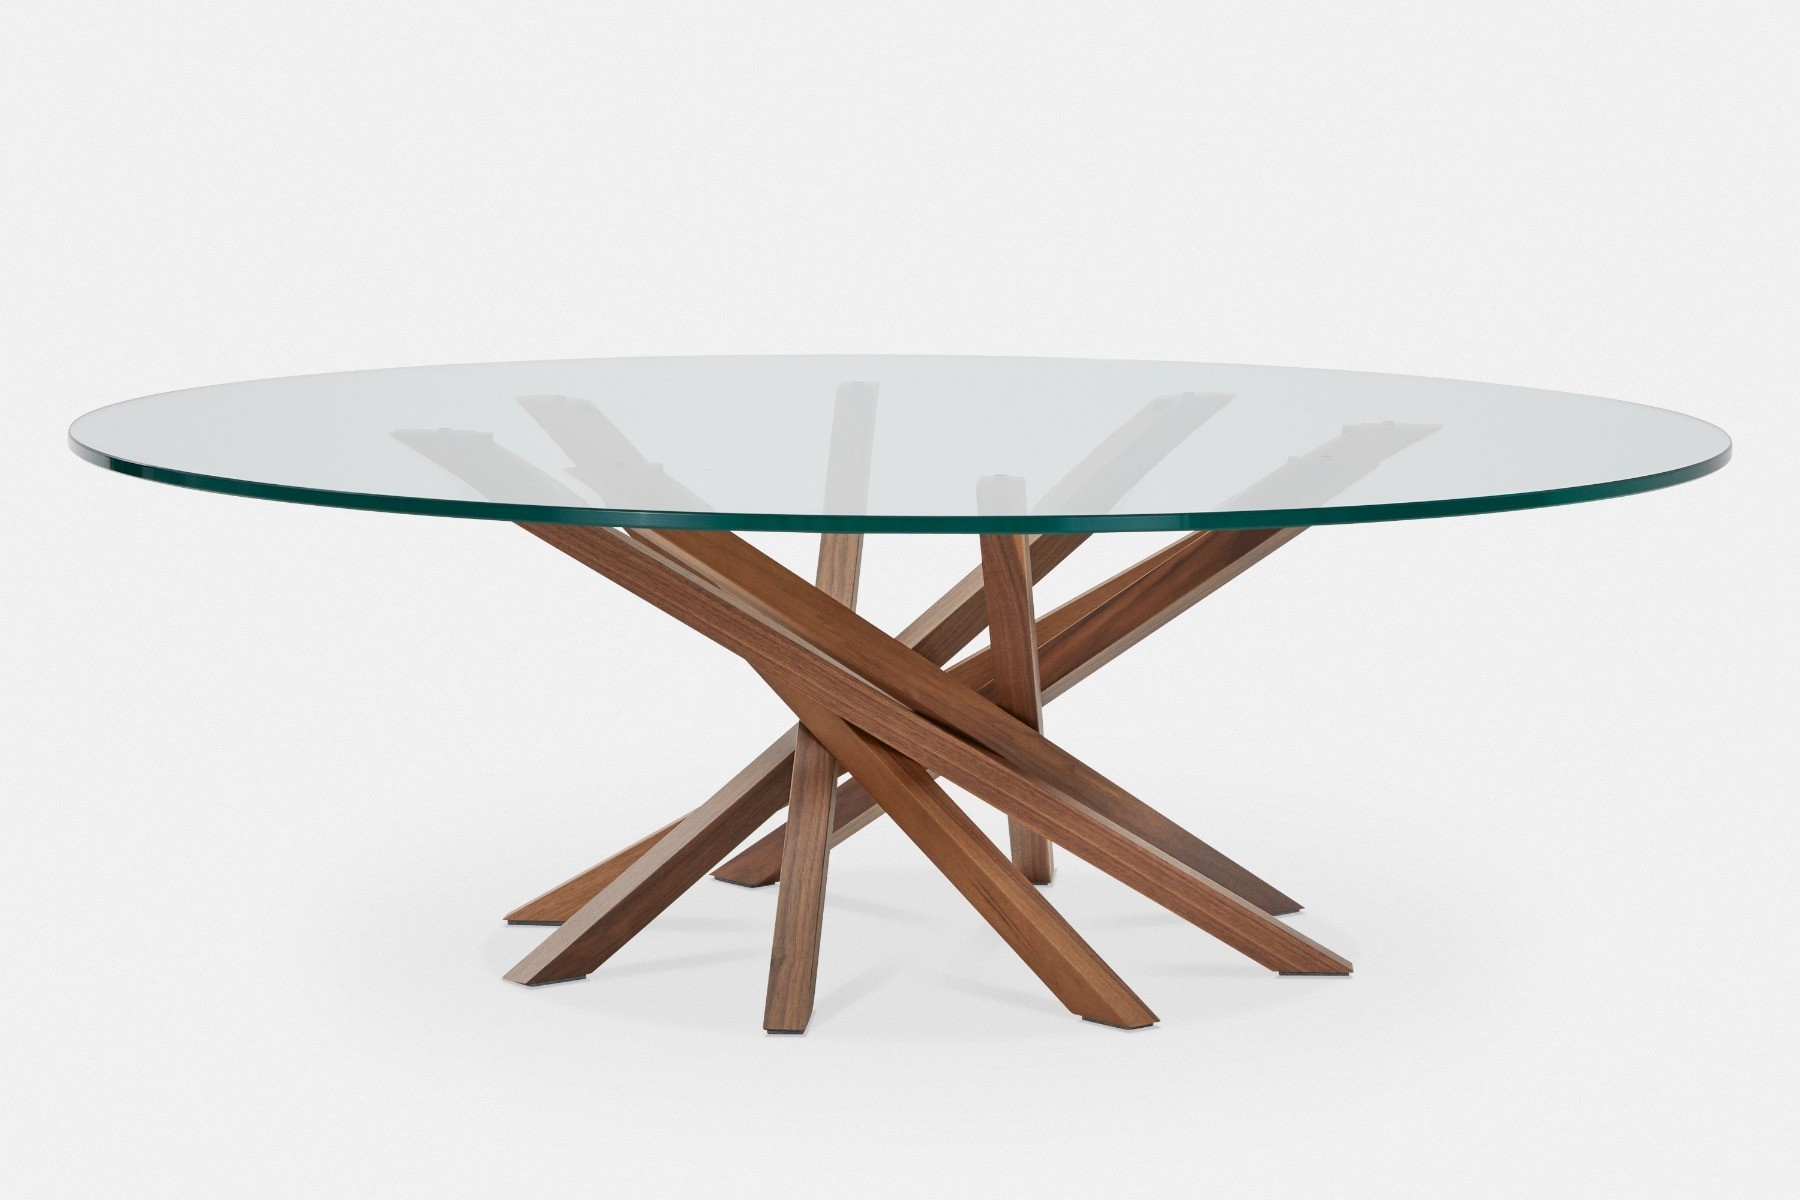 Cool Atari Coffee Table With Architectural Base Maison Corbeil Machost Co Dining Chair Design Ideas Machostcouk